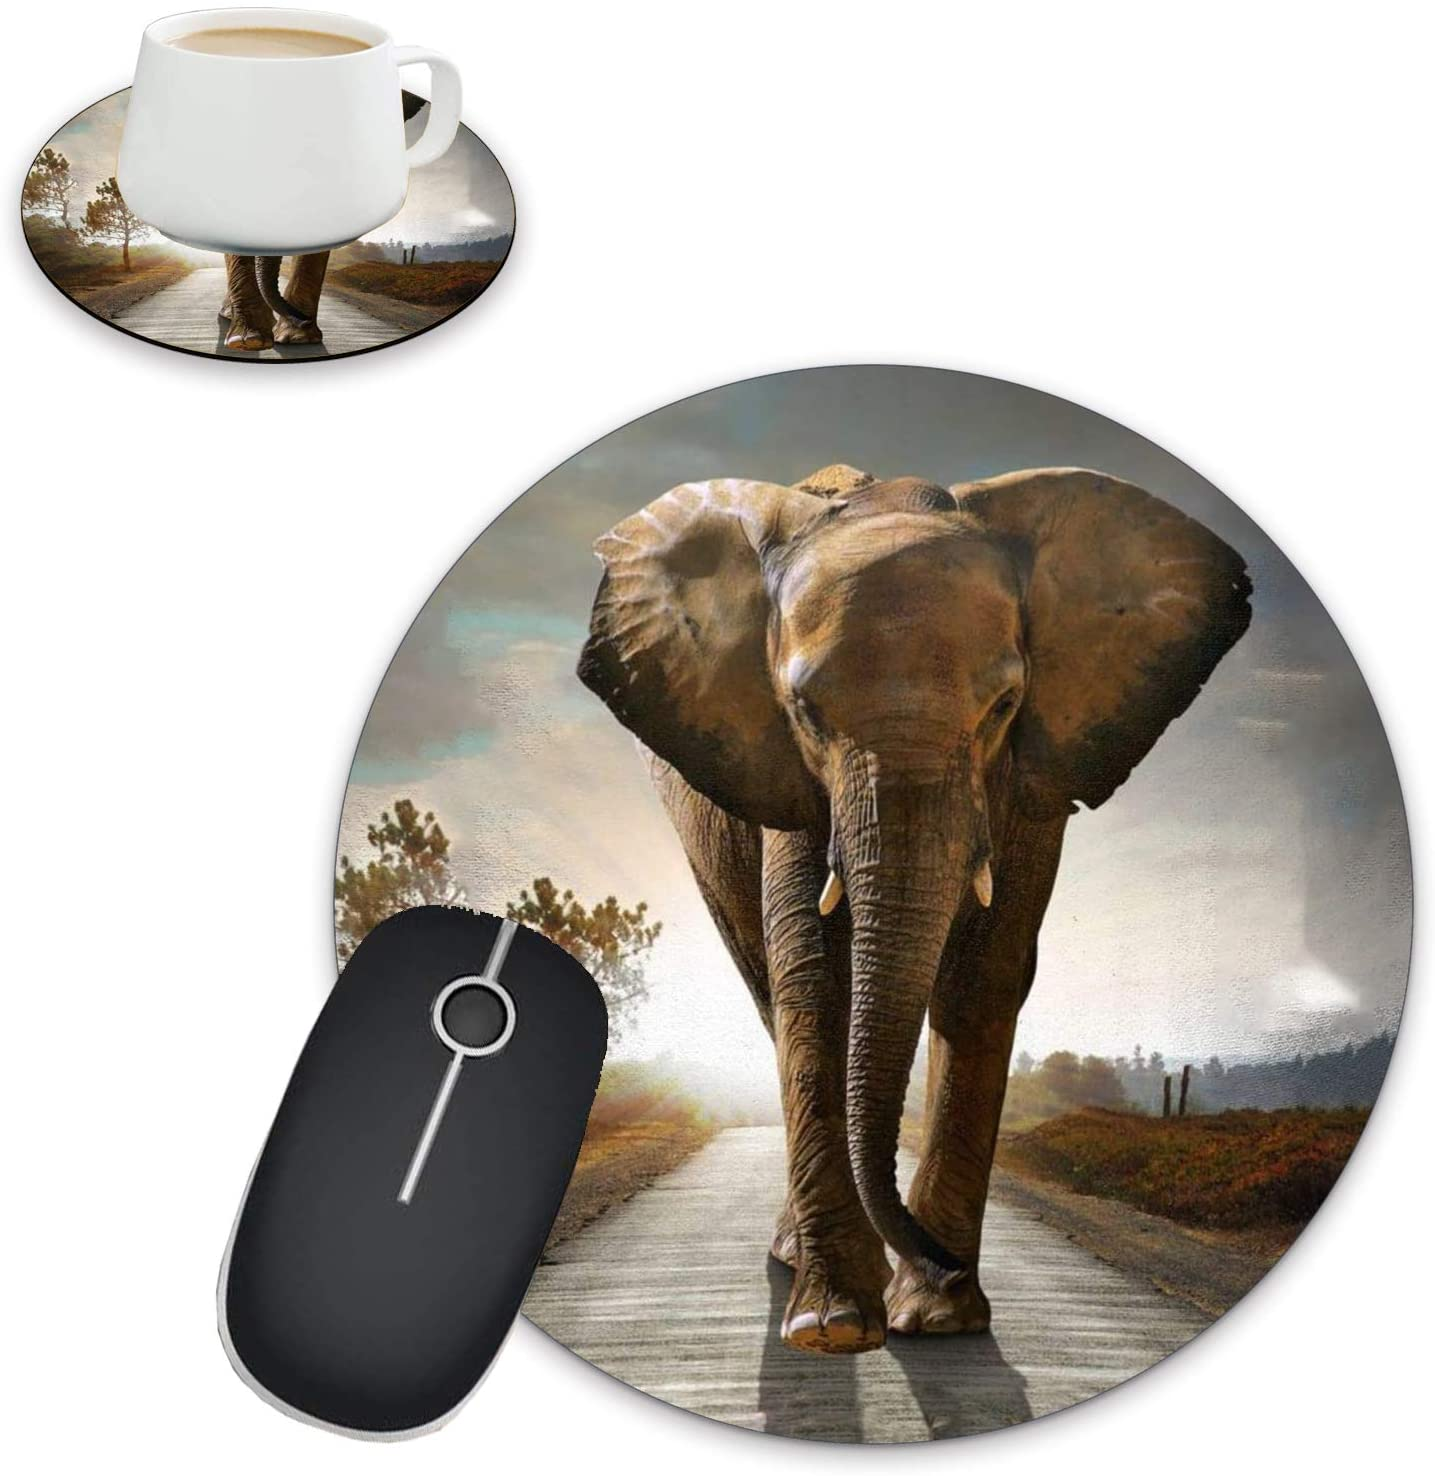 Round Mouse Pad and Coasters, Sunset Elephant Pattern Design Round Non-Slip Rubber Mouse Pad, Custom Mouse Pad for Home Office Business Games